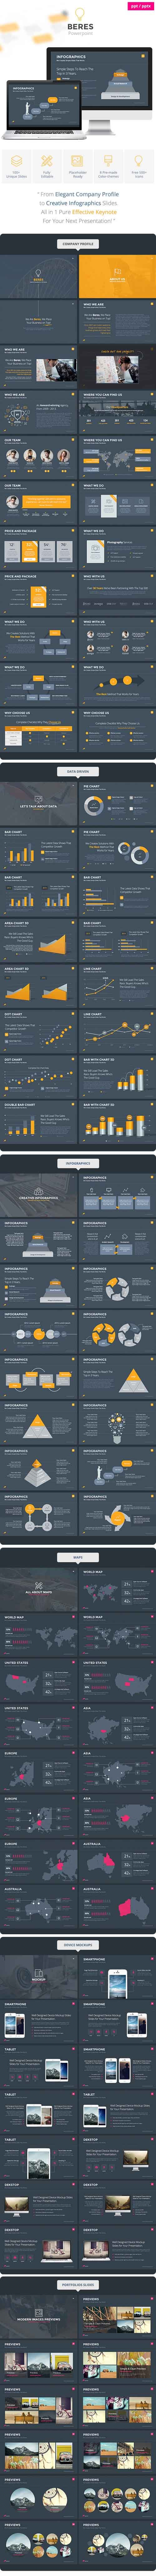 Beres - Powerpoint Template 12380043